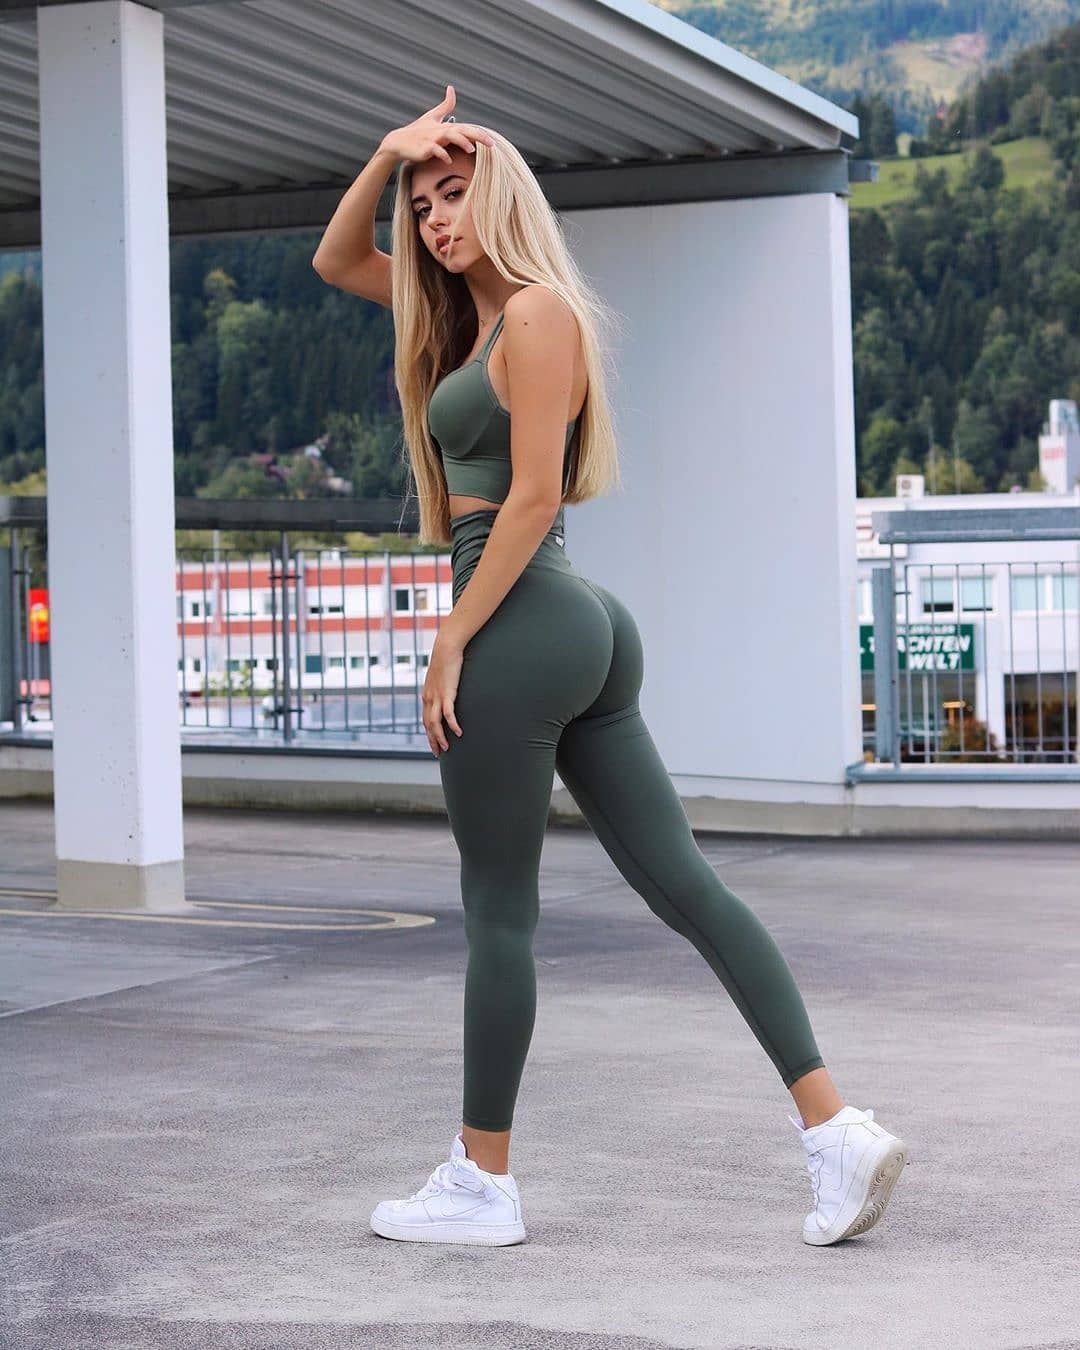 äRsche In Leggins